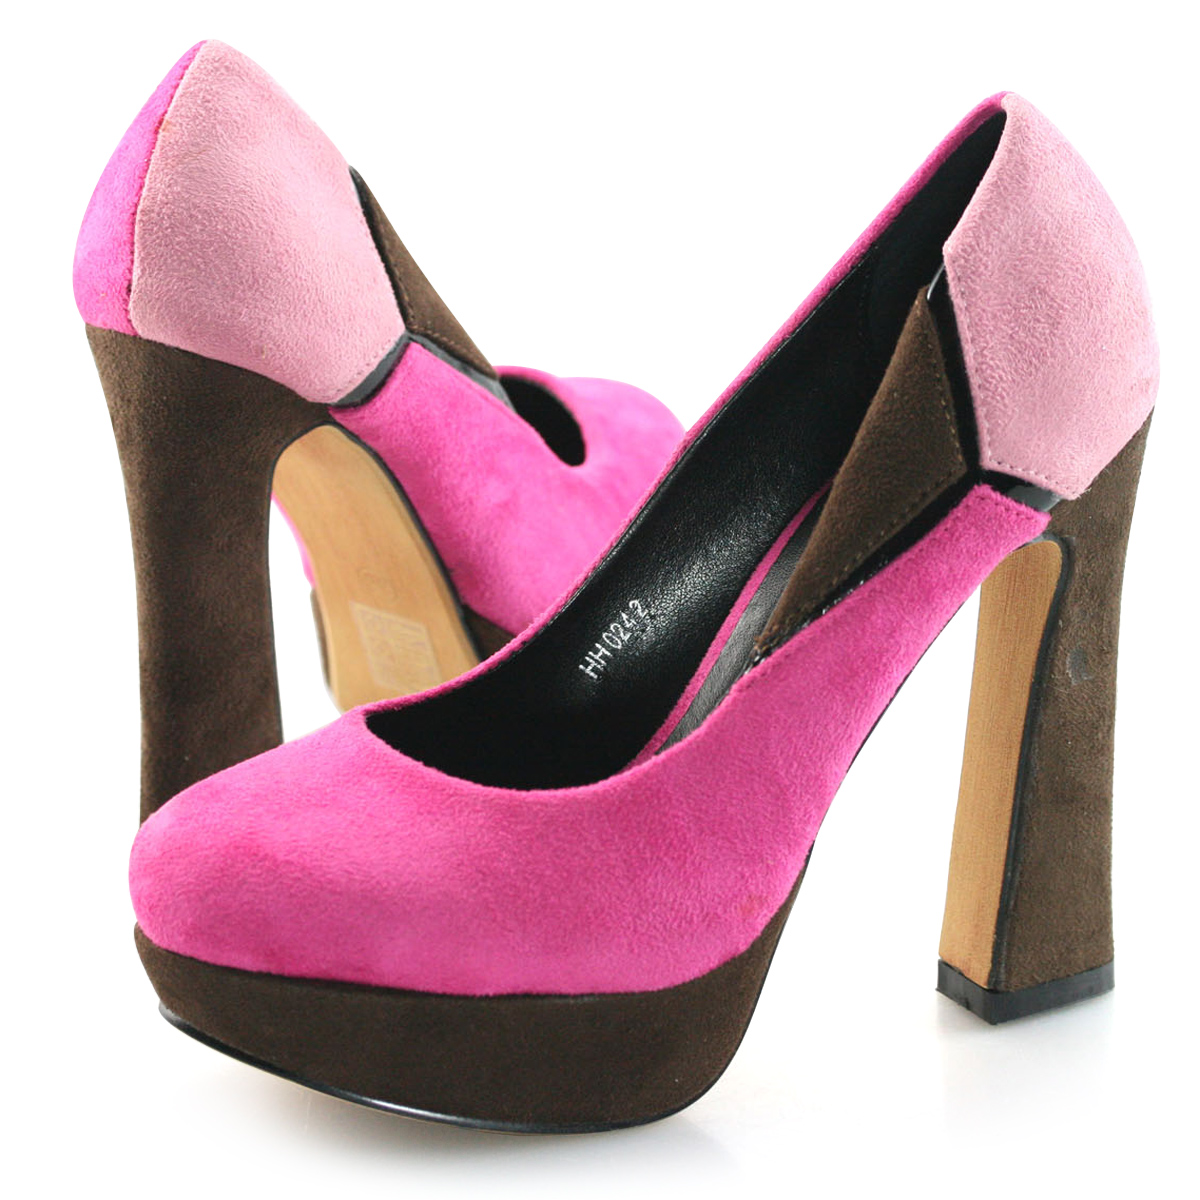 womens fuchsia pink high heels platform pumps party dress shoes size 3 8 new ebay. Black Bedroom Furniture Sets. Home Design Ideas